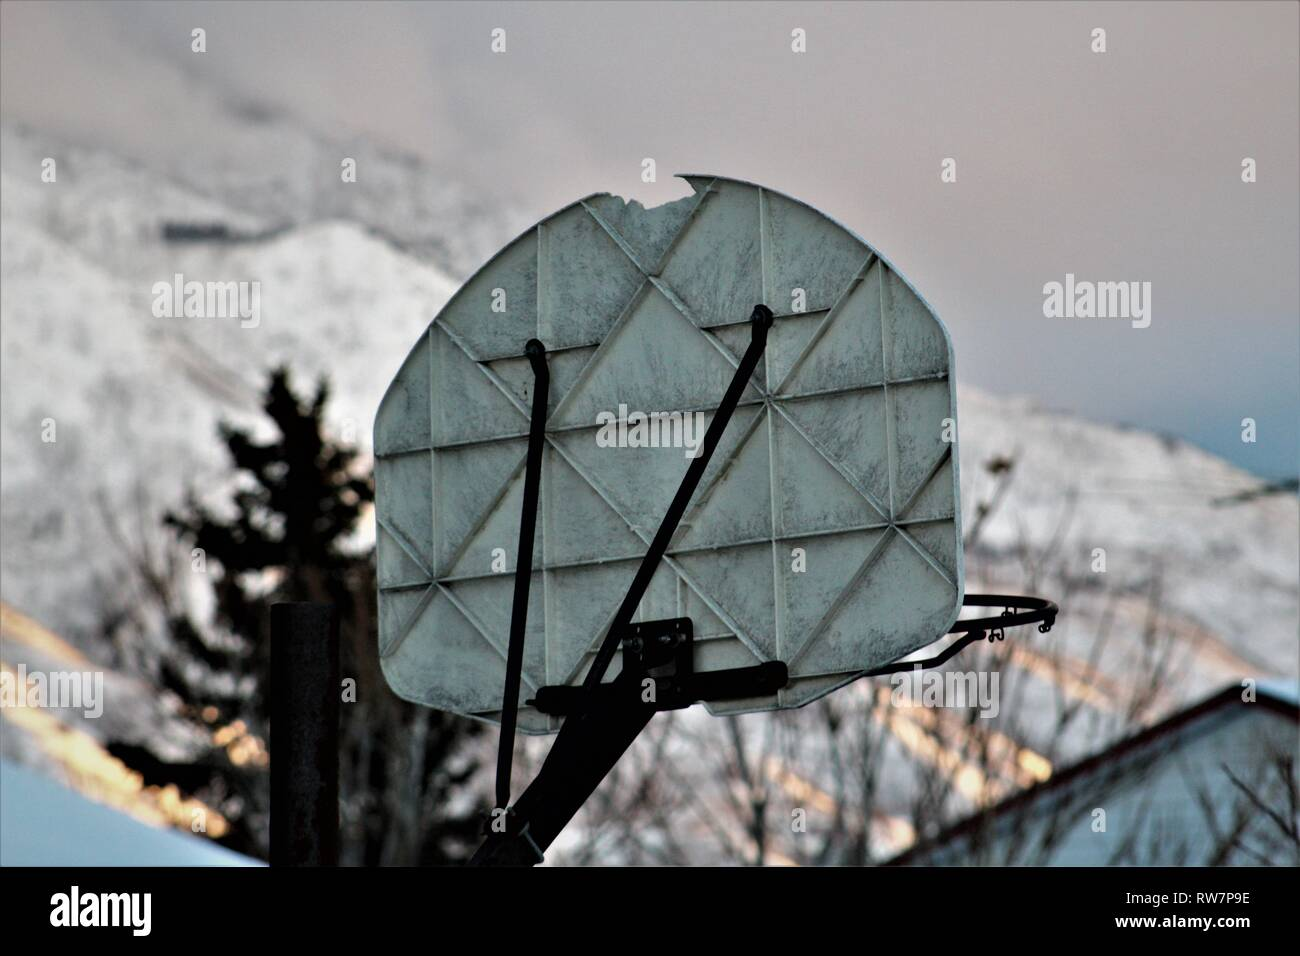 Basketball Hoop on a Snowy Day Stock Photo